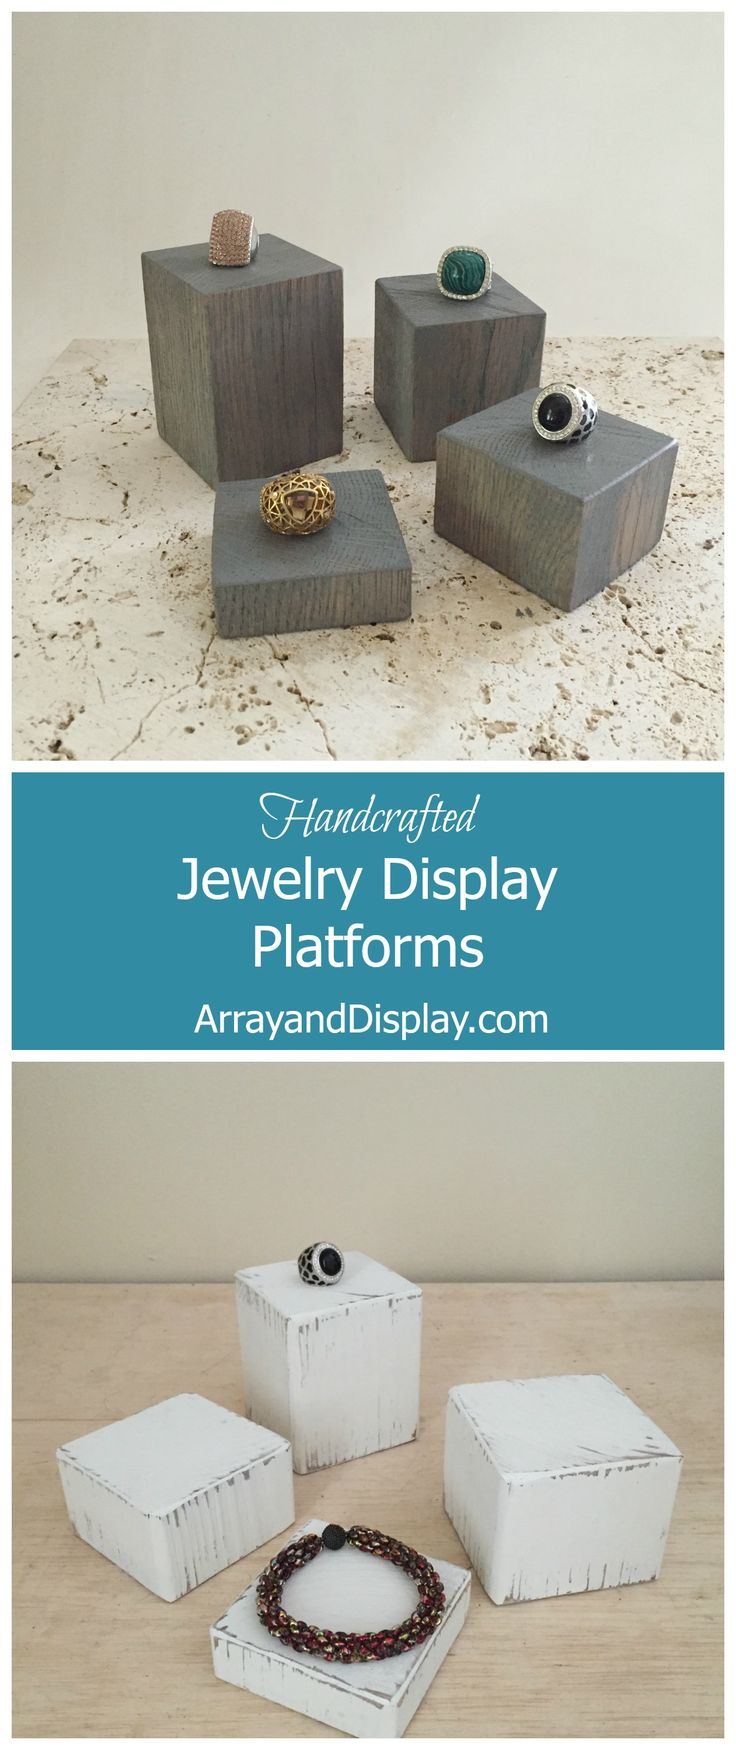 Handcrafted jewelry displays made of locally sourced new and reclaimed wood.  Handcrafted in the USA by ArrayandDisplay.com.  Ring displays, jewelry risers, jewelry platforms, booth displays, boutique displays, craft market displays.